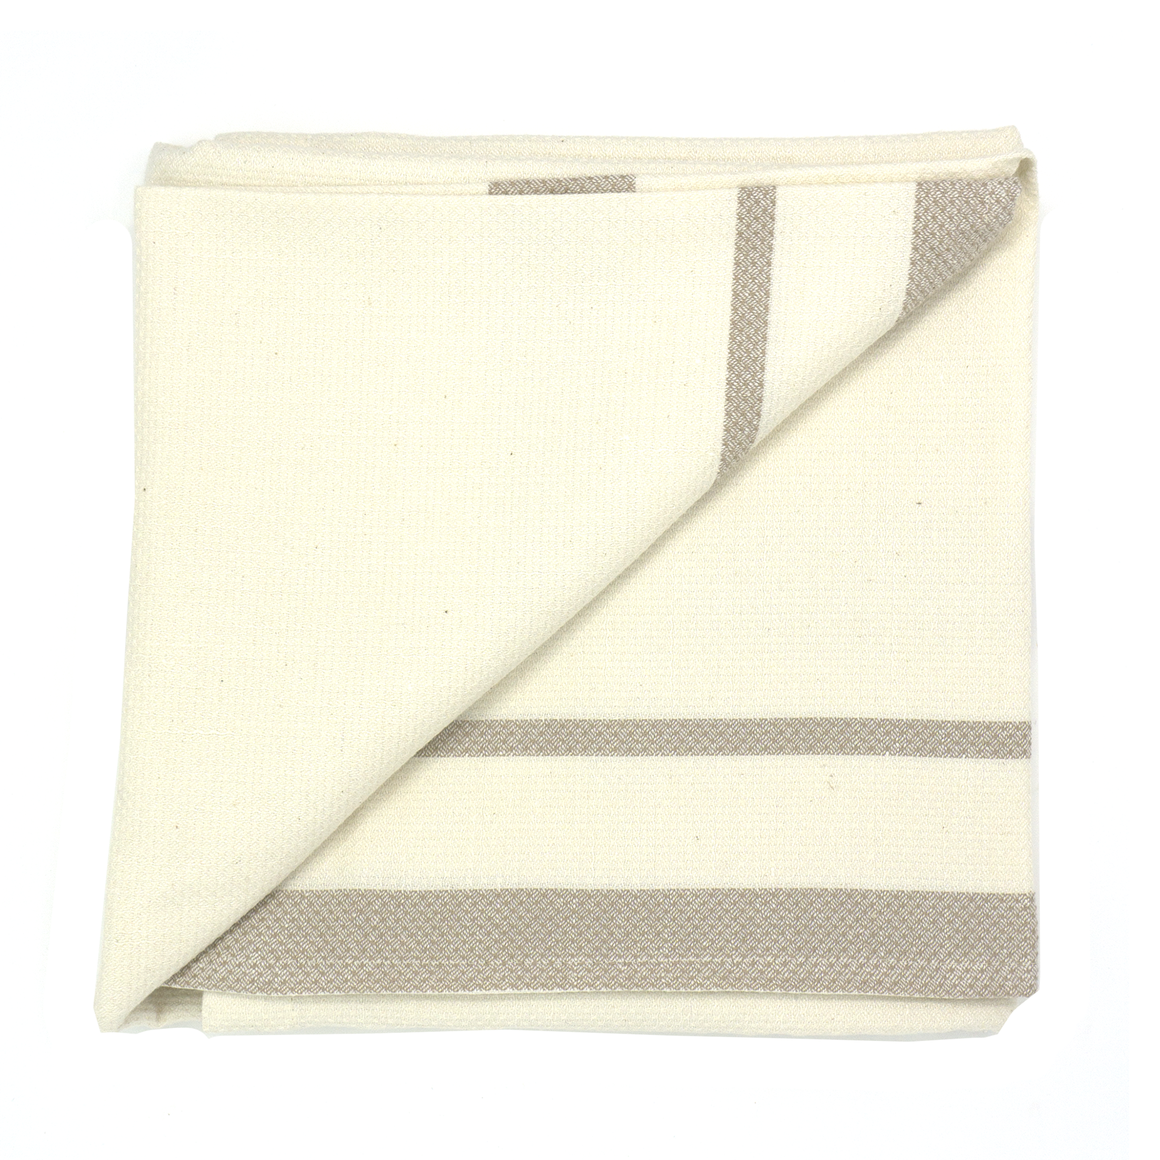 mungo huck bath towel - taupe on ecru